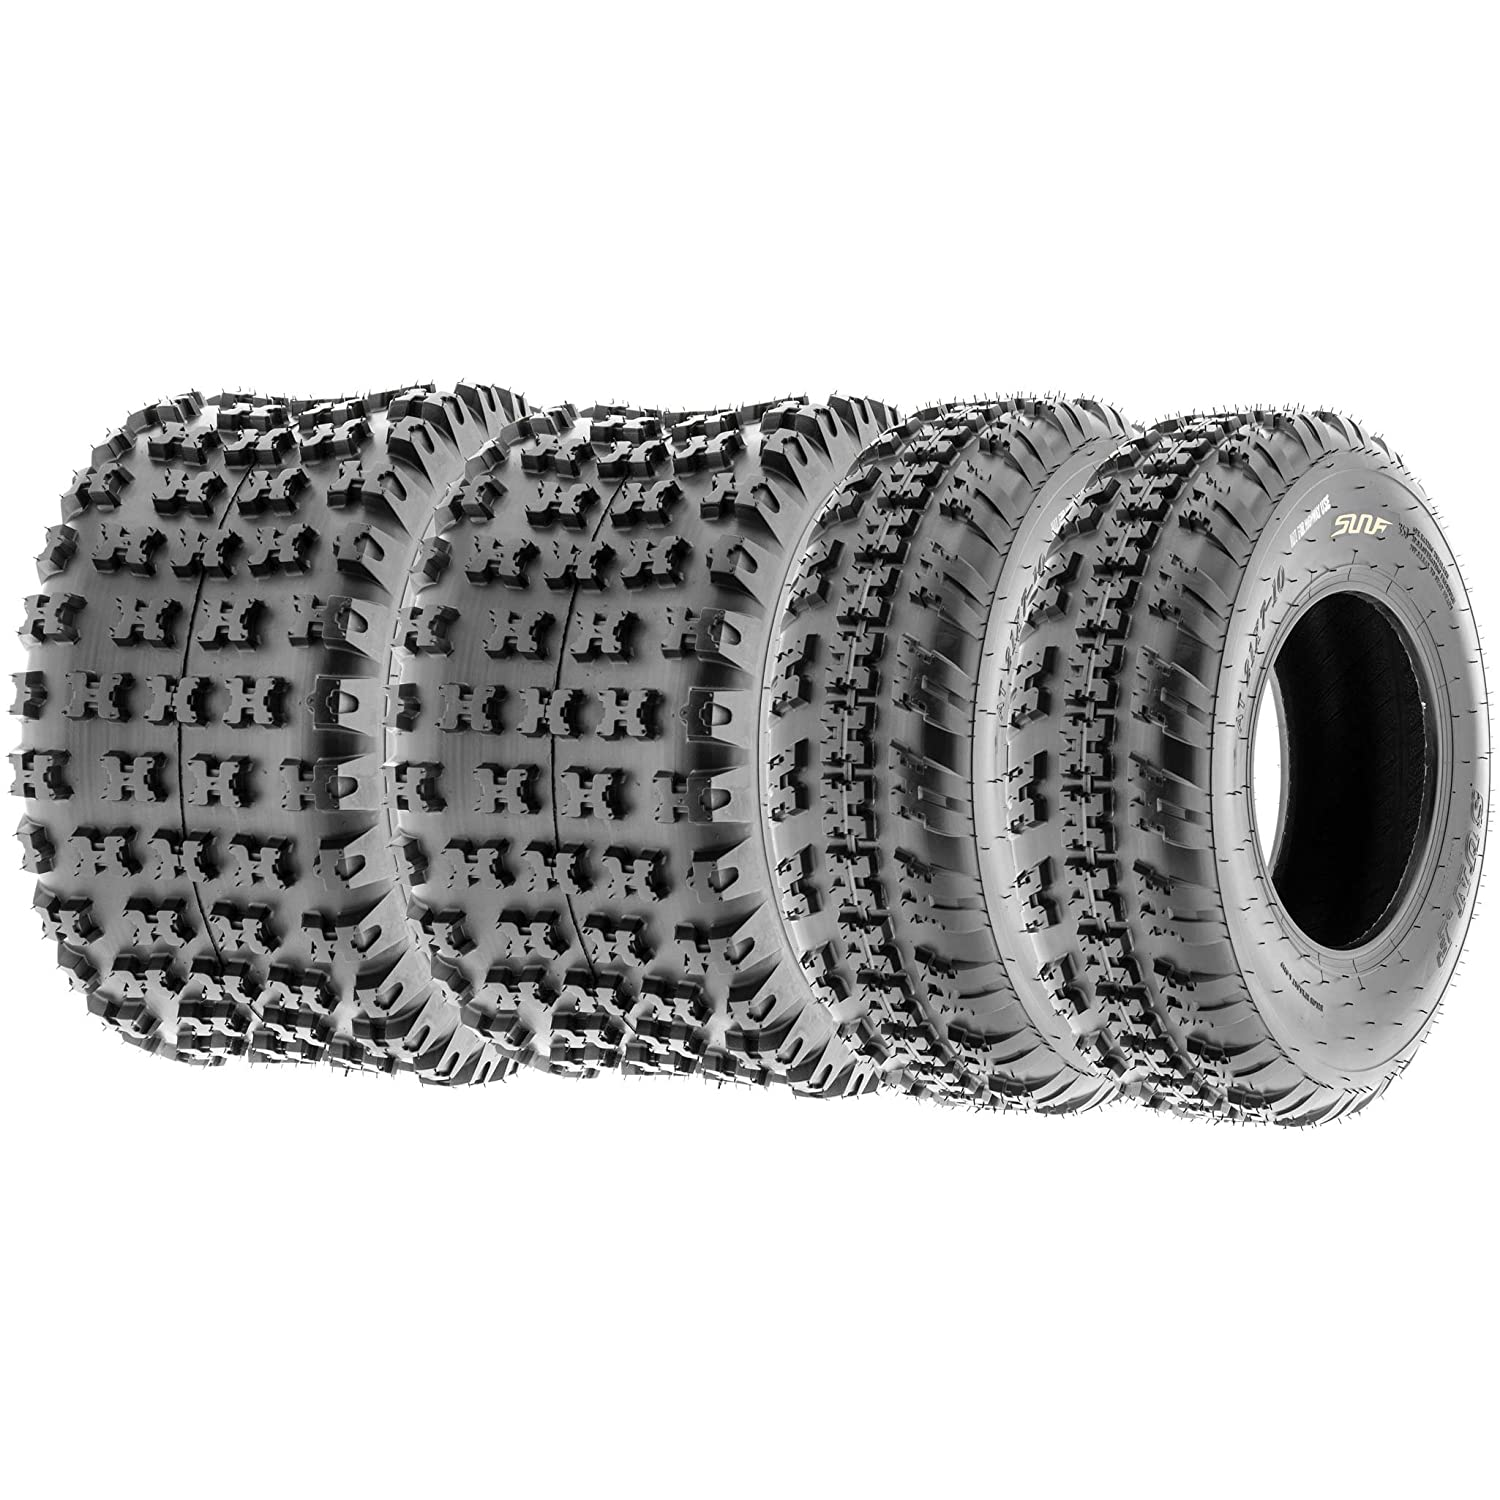 SunF All Terrain Trail Replacement ATV UTV 6 Ply Tires 21x7-10 & 22x11-9 Tubeless A031, [Set of 4] LCF1|A031|210710|221109|x4